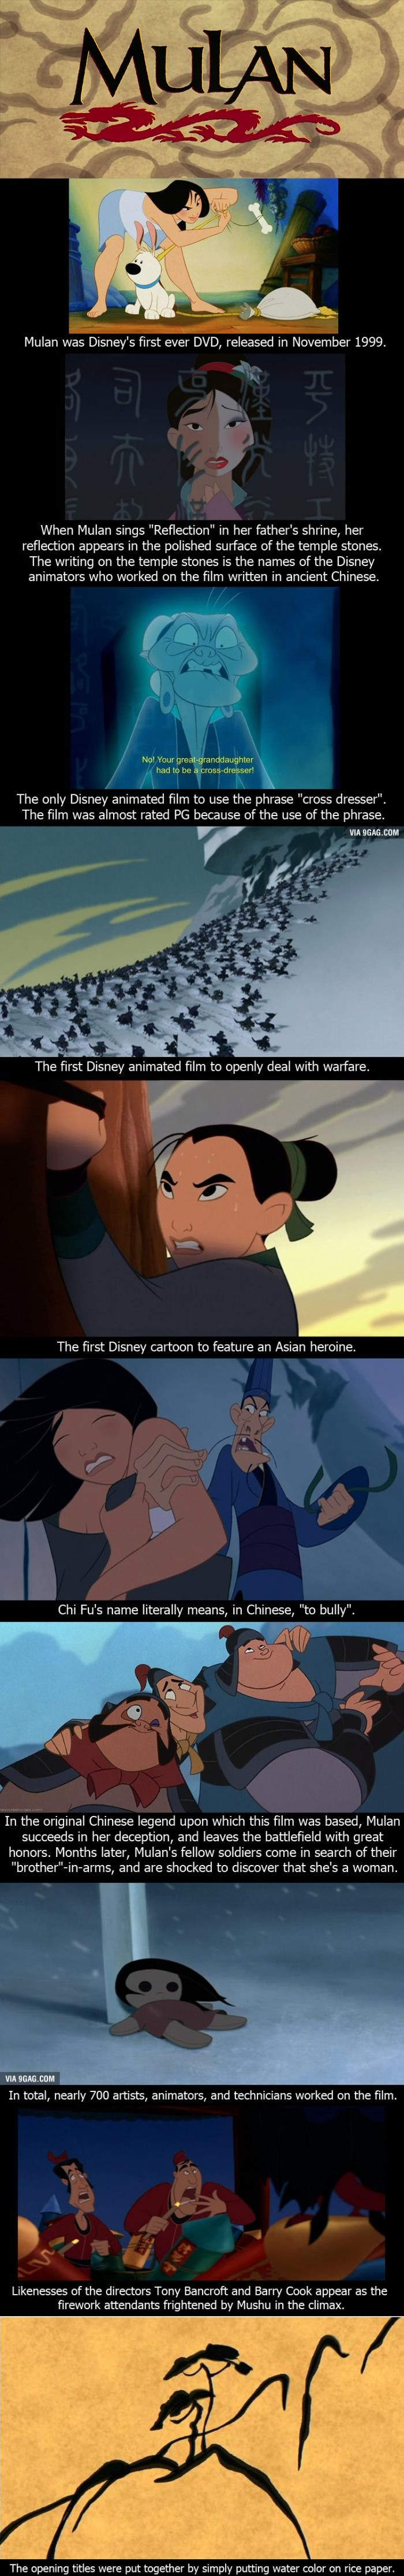 My favorite Disney movie -10 Facts About the Mulan movie